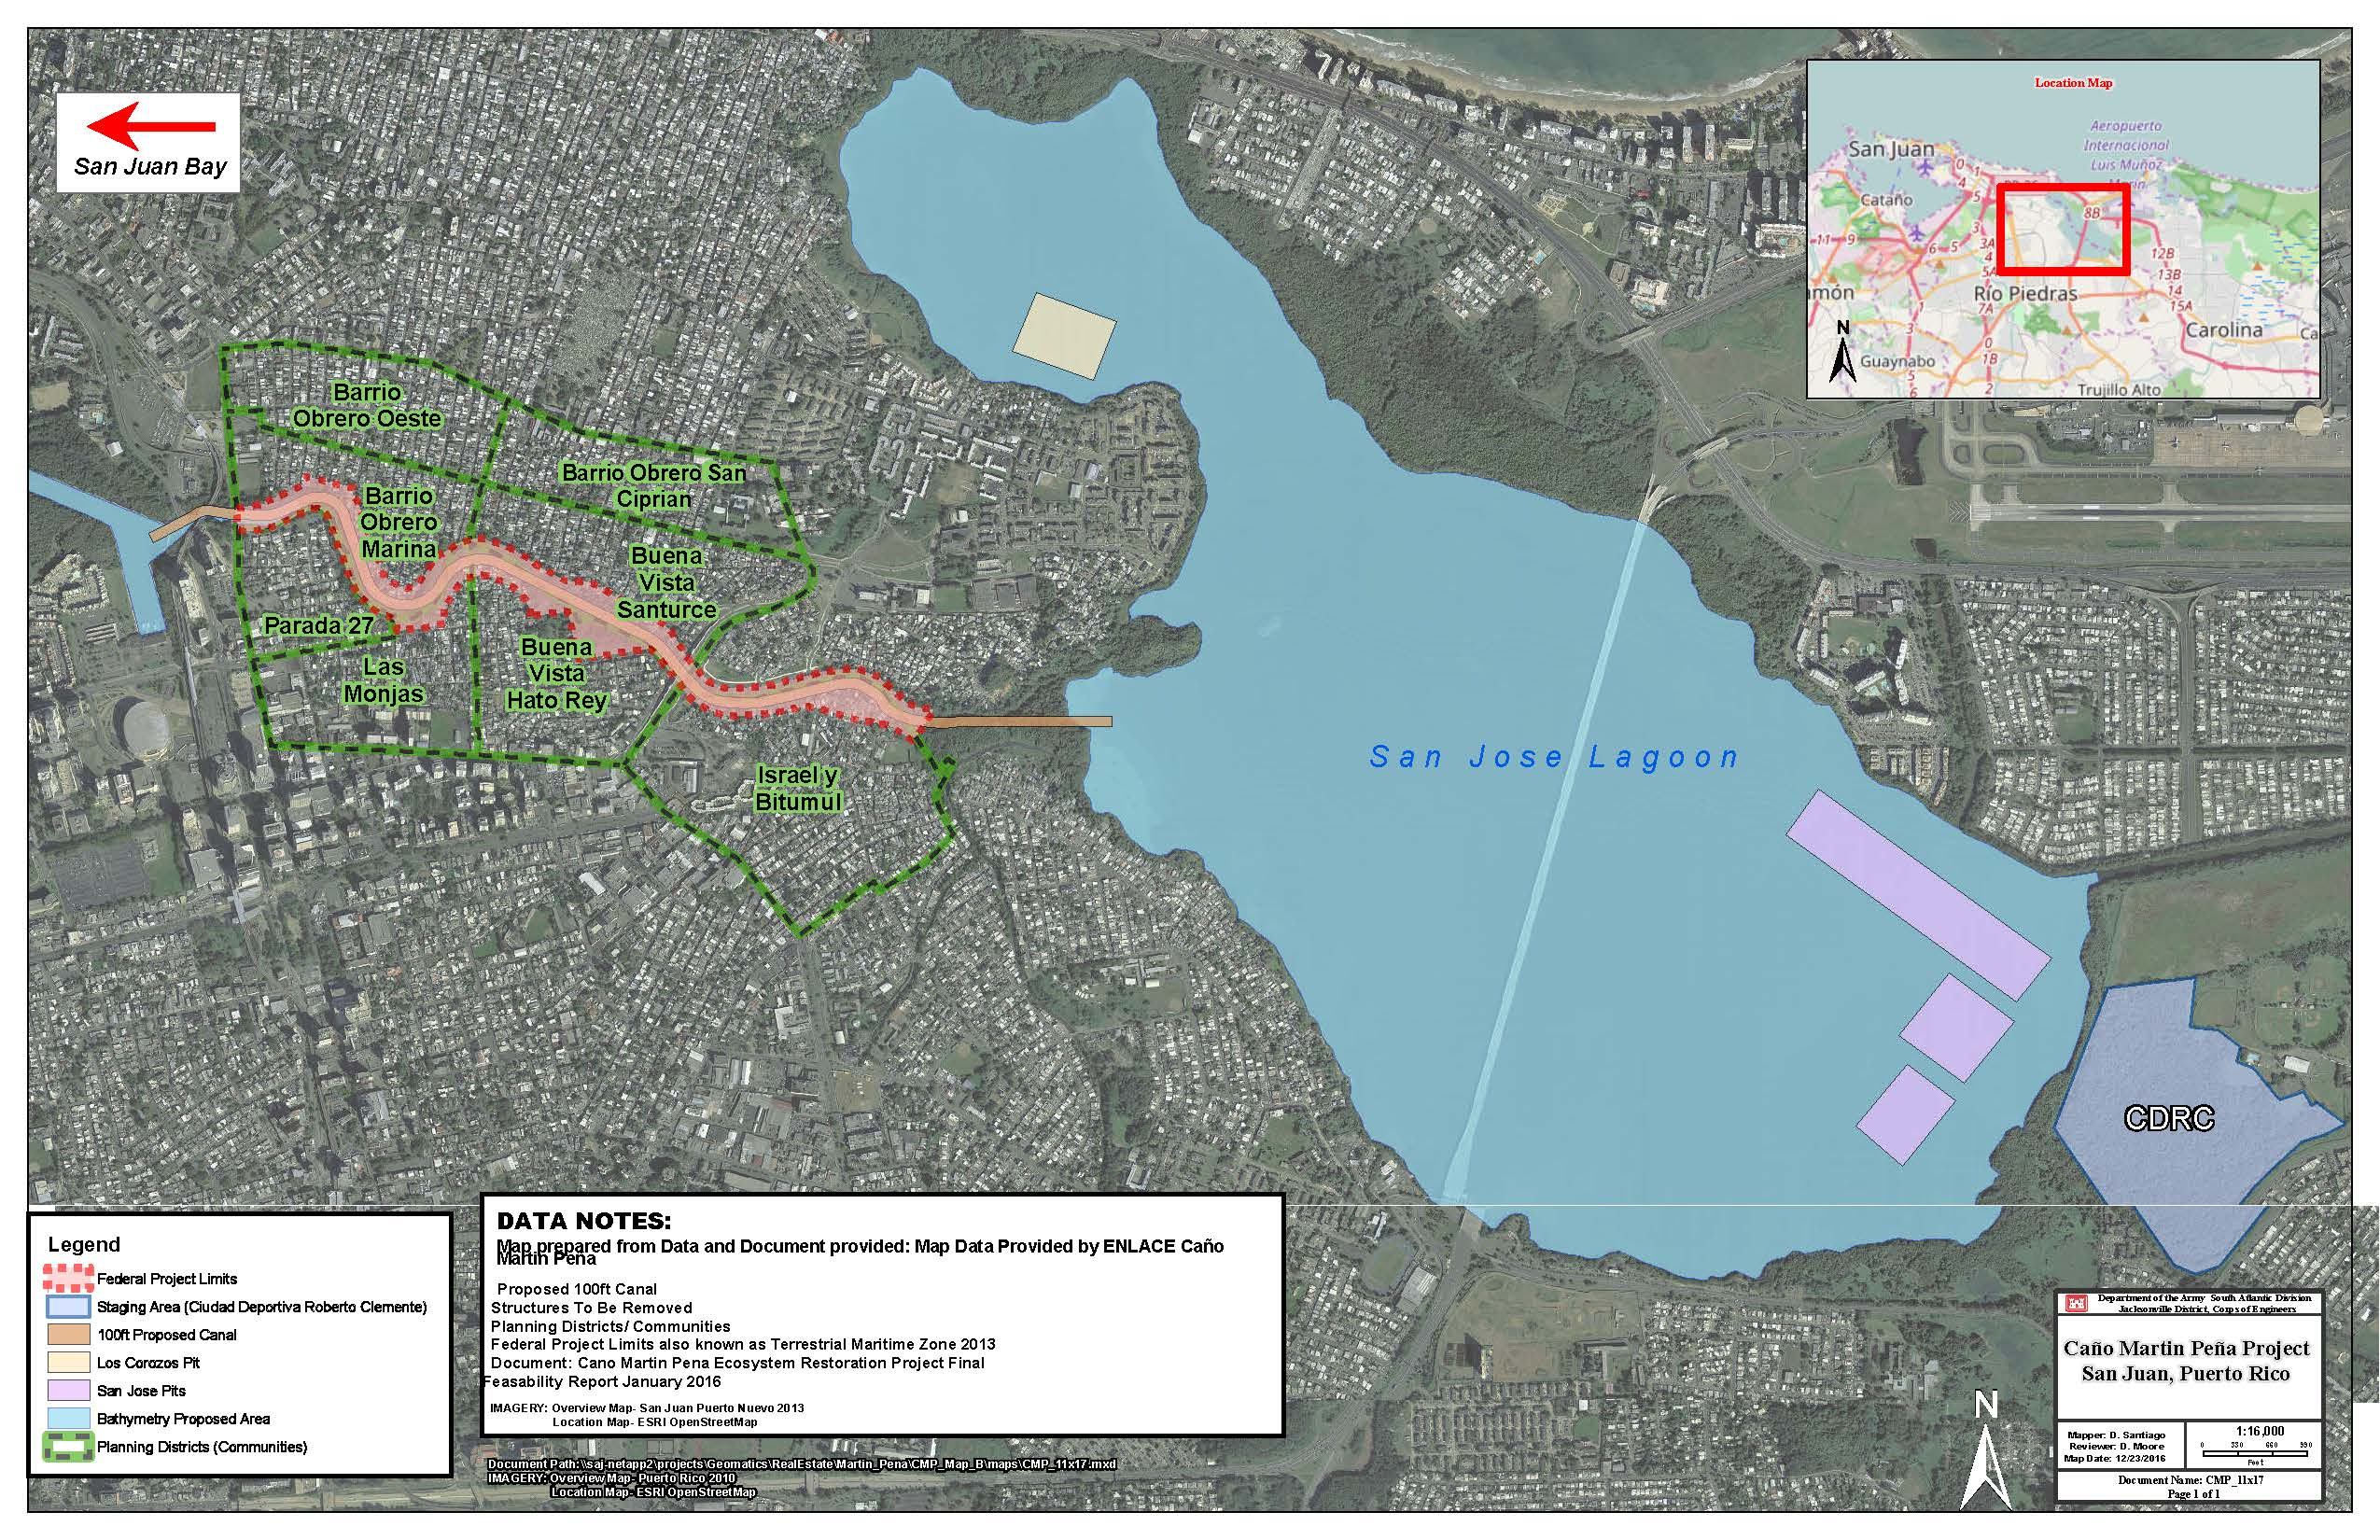 Martin Peña Canal Design project map